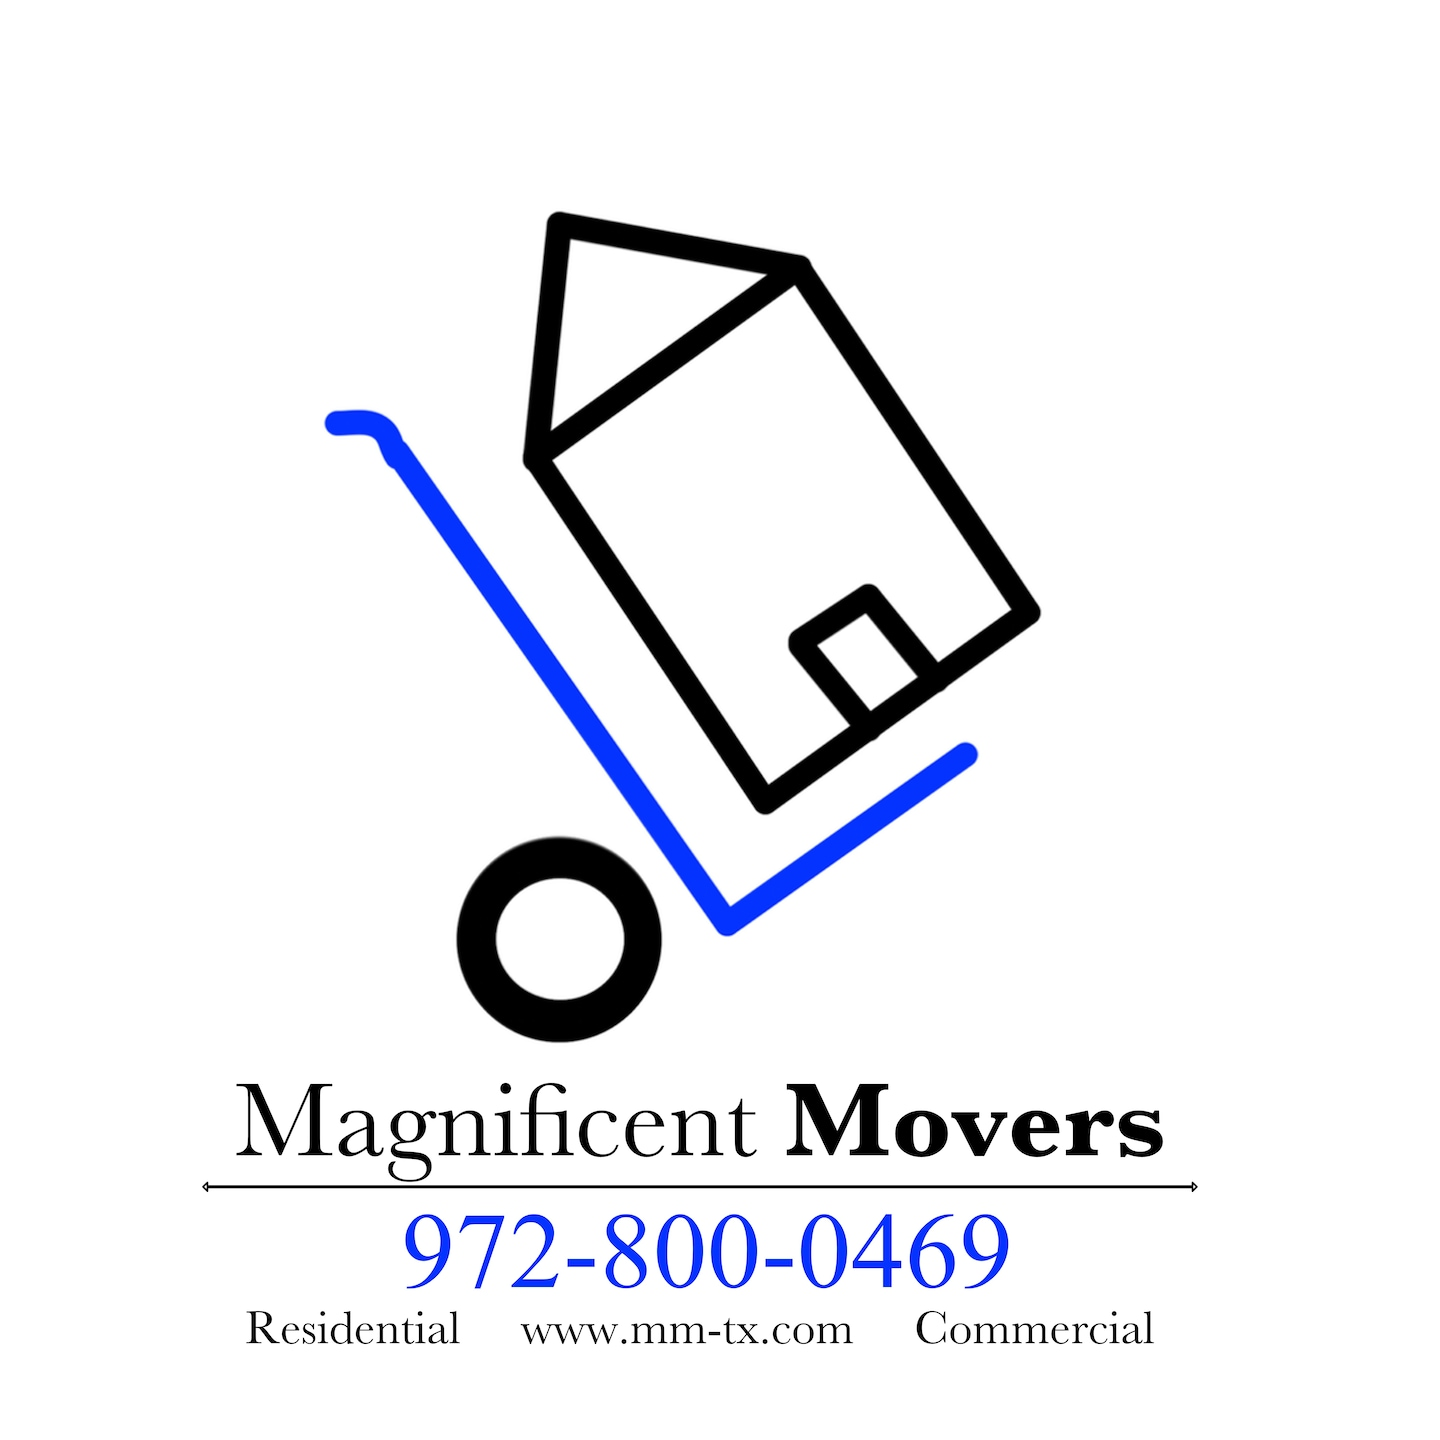 Magnificent Movers Reviews